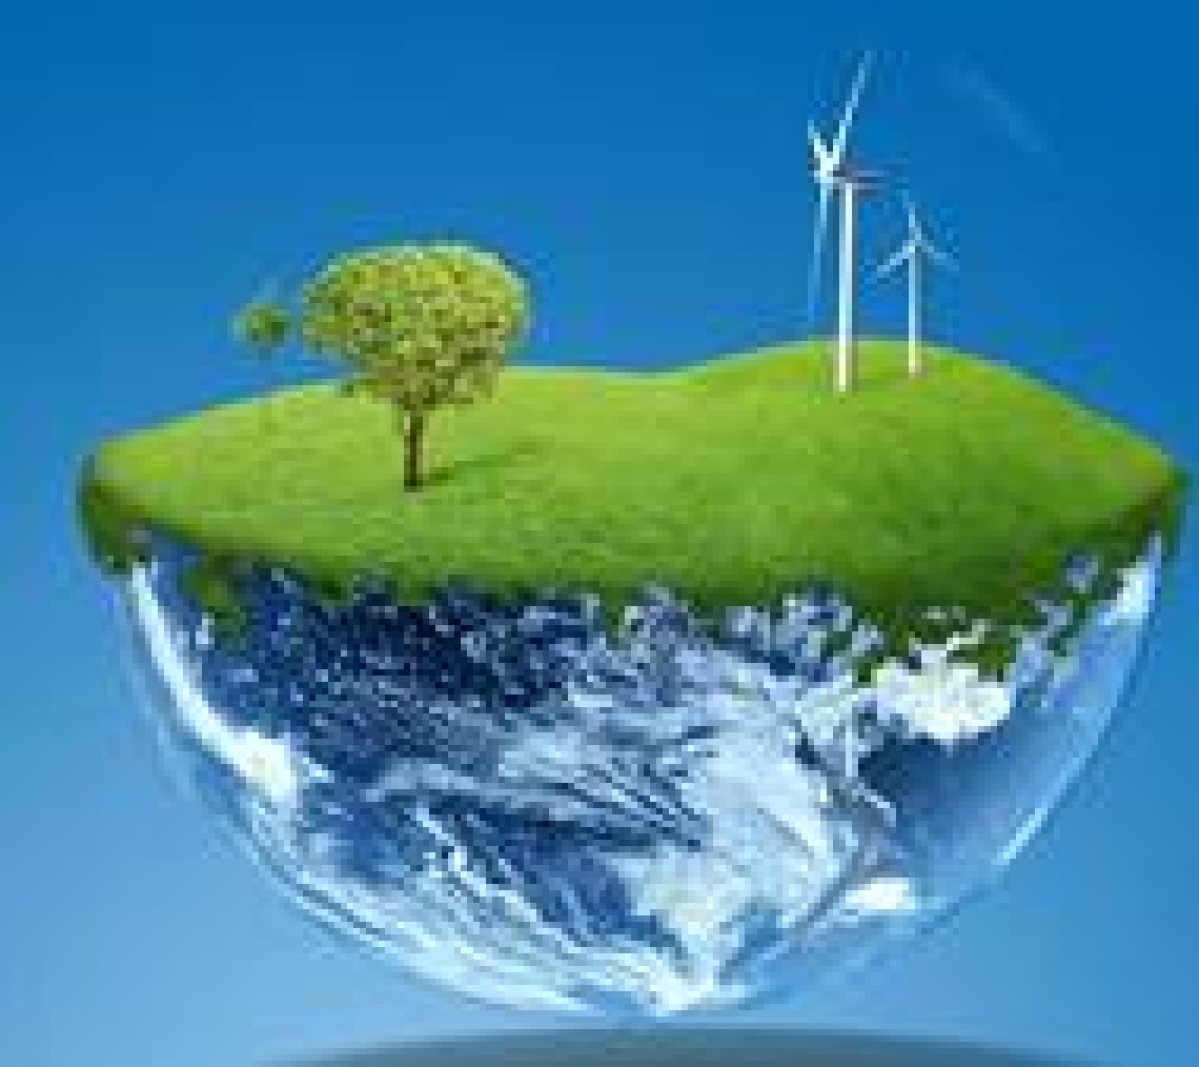 Human impact affects Earth's global energy flow: study